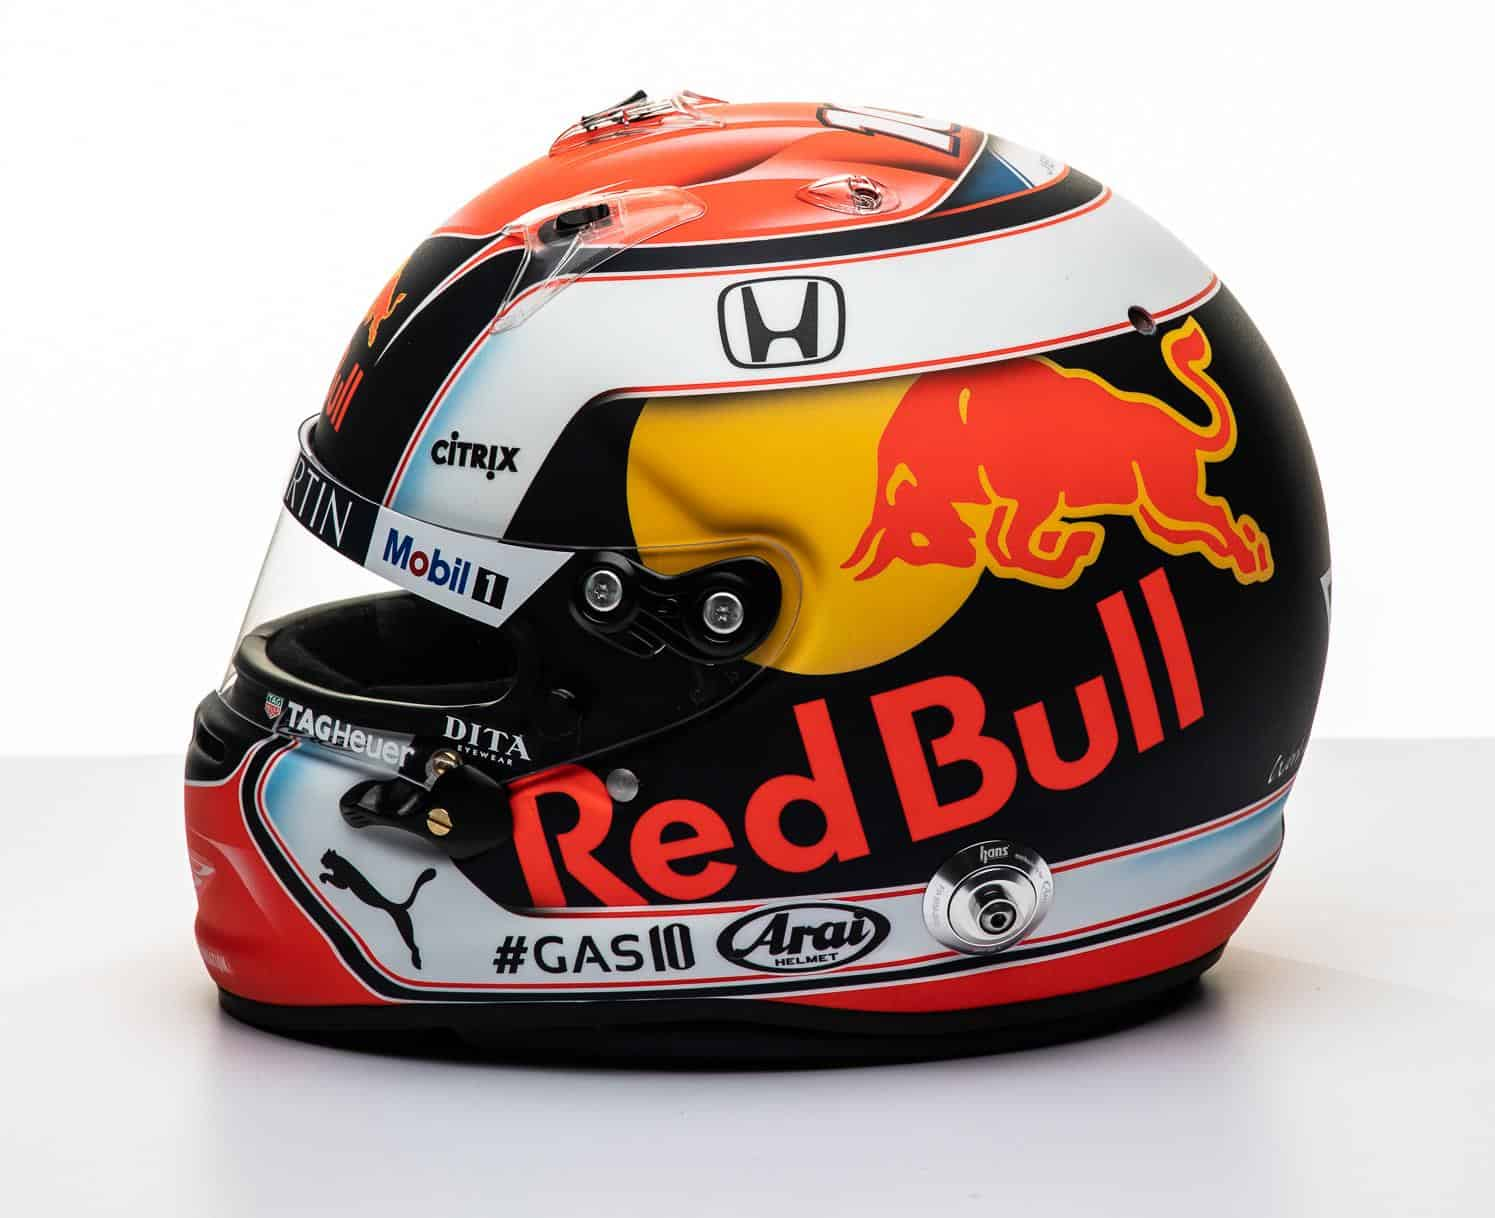 2019 F1 Pierre Gasly Red Bull Honda helmet left side Photo Red Bull Edited by MAXF1net